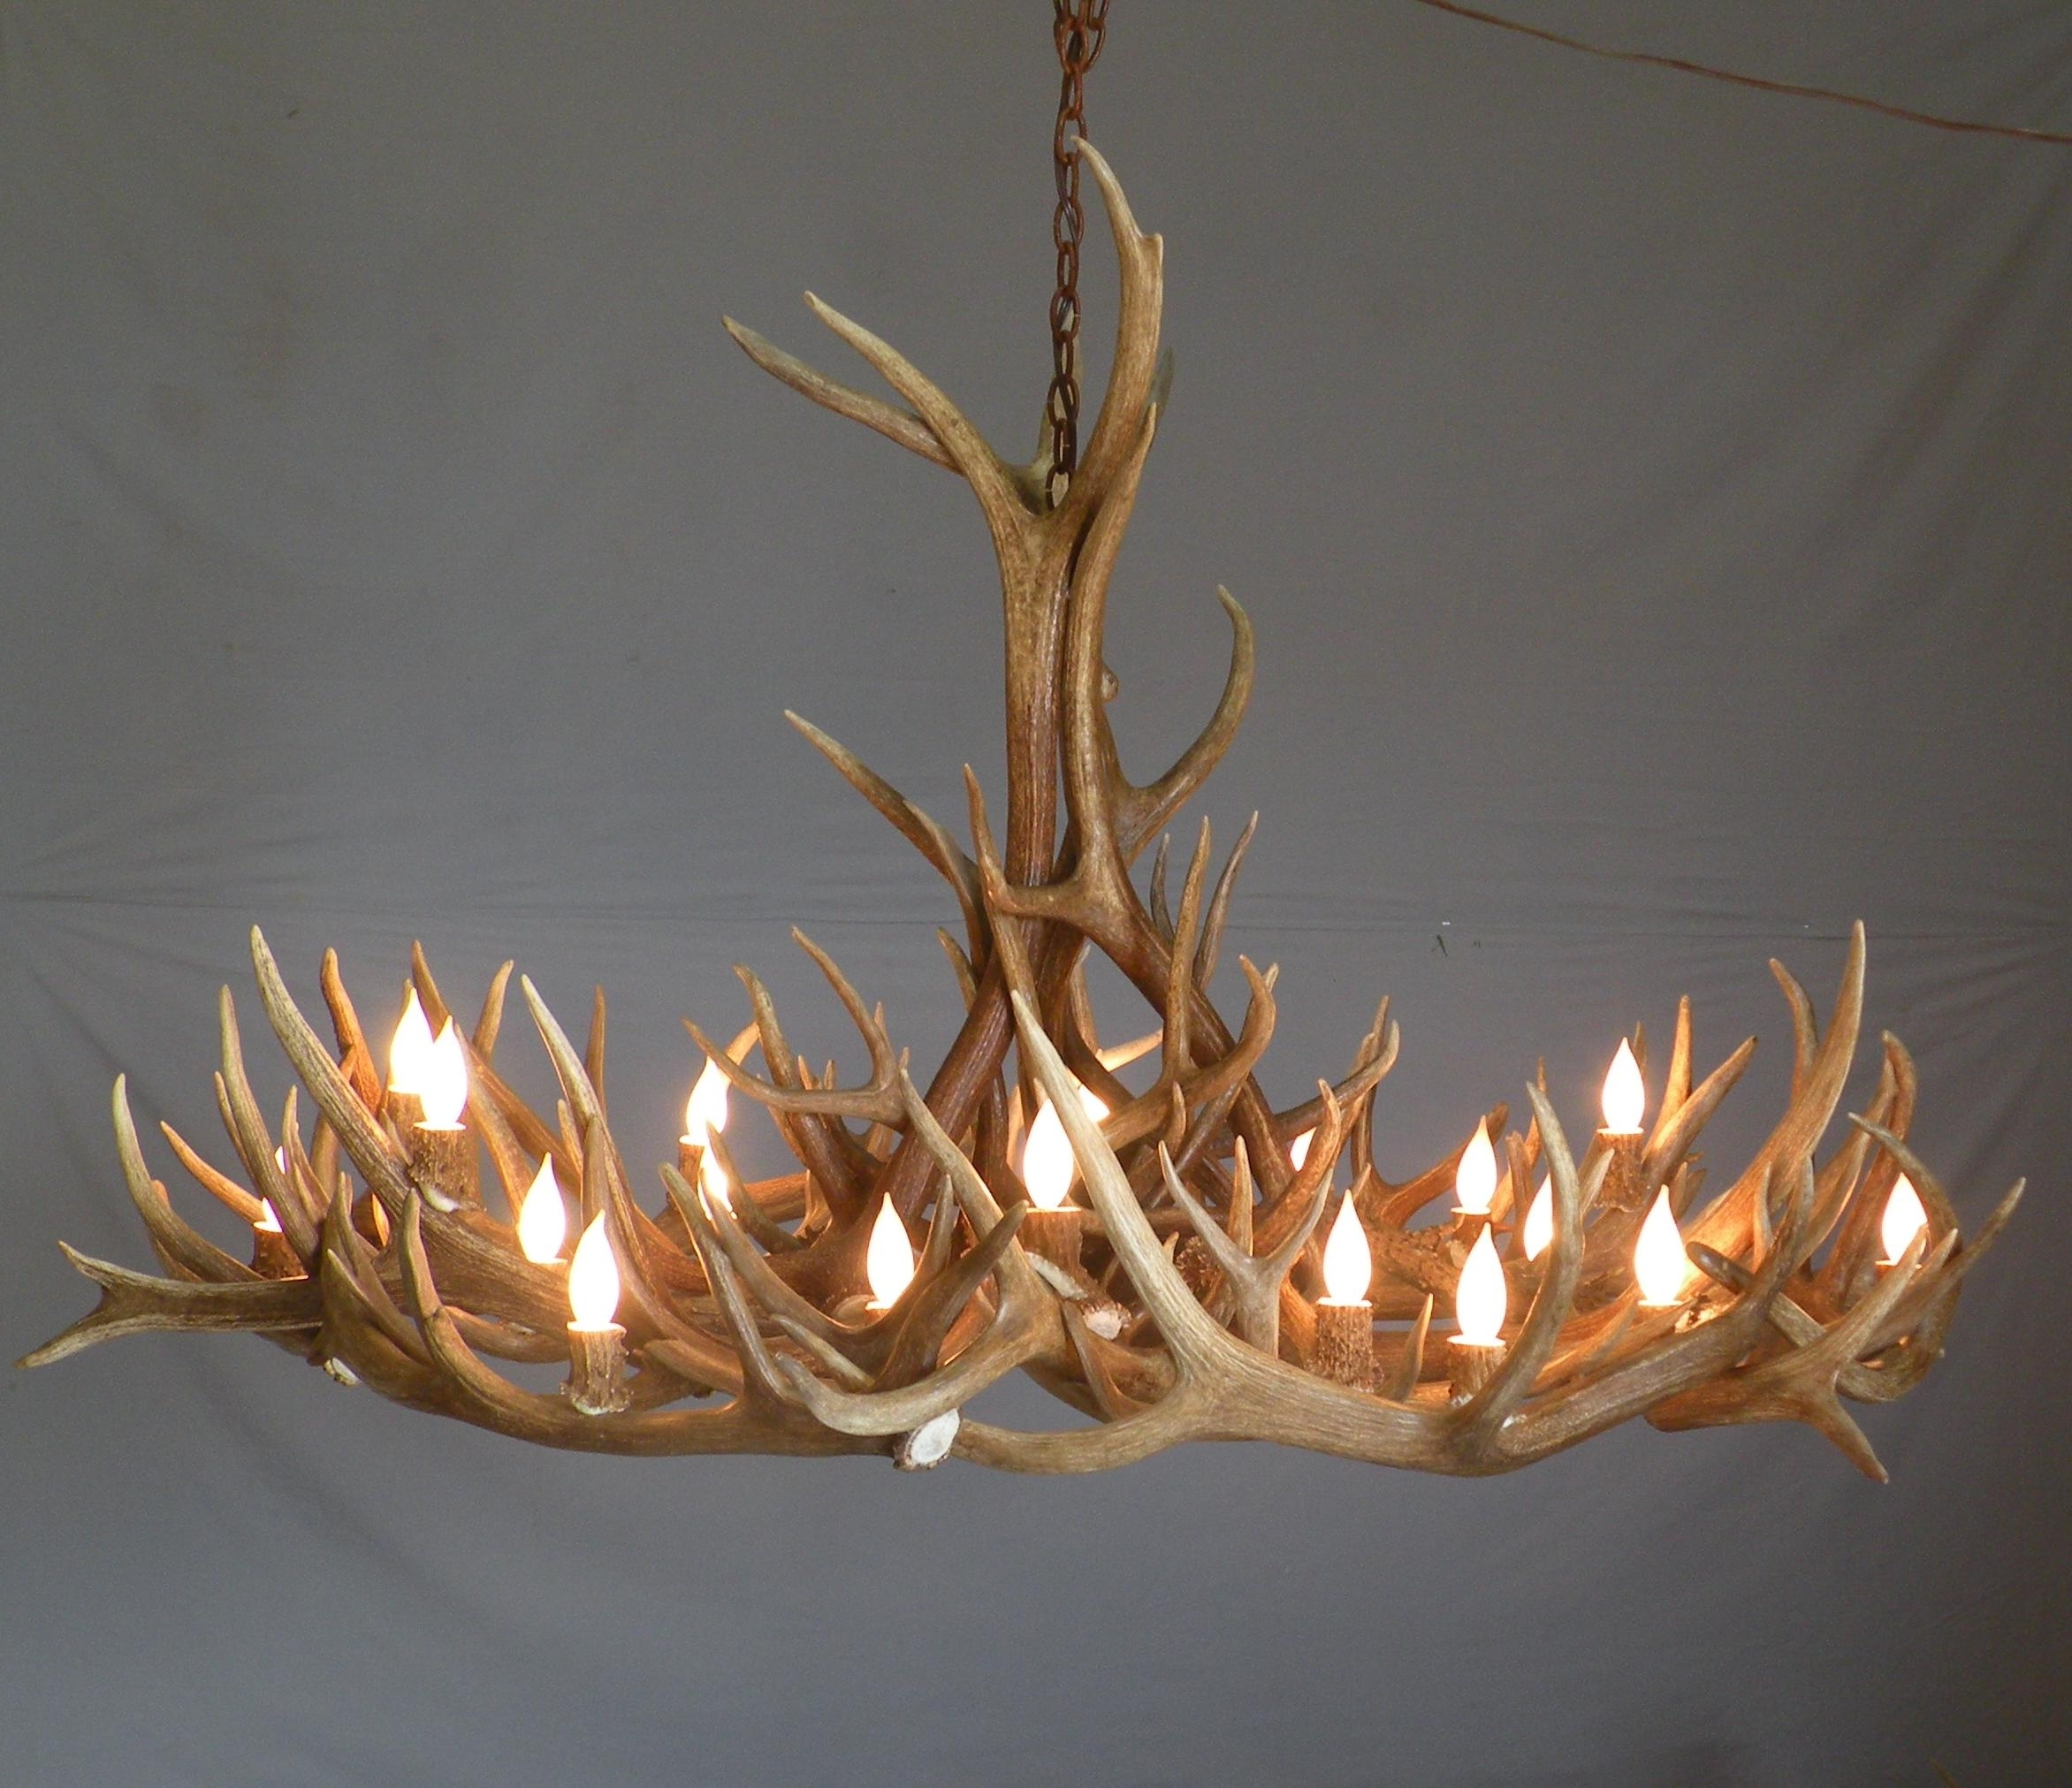 Photos: Antler Decor Colorado, Antler Art And Design, Antler Throughout Most Recently Released Antler Chandeliers And Lighting (View 15 of 20)